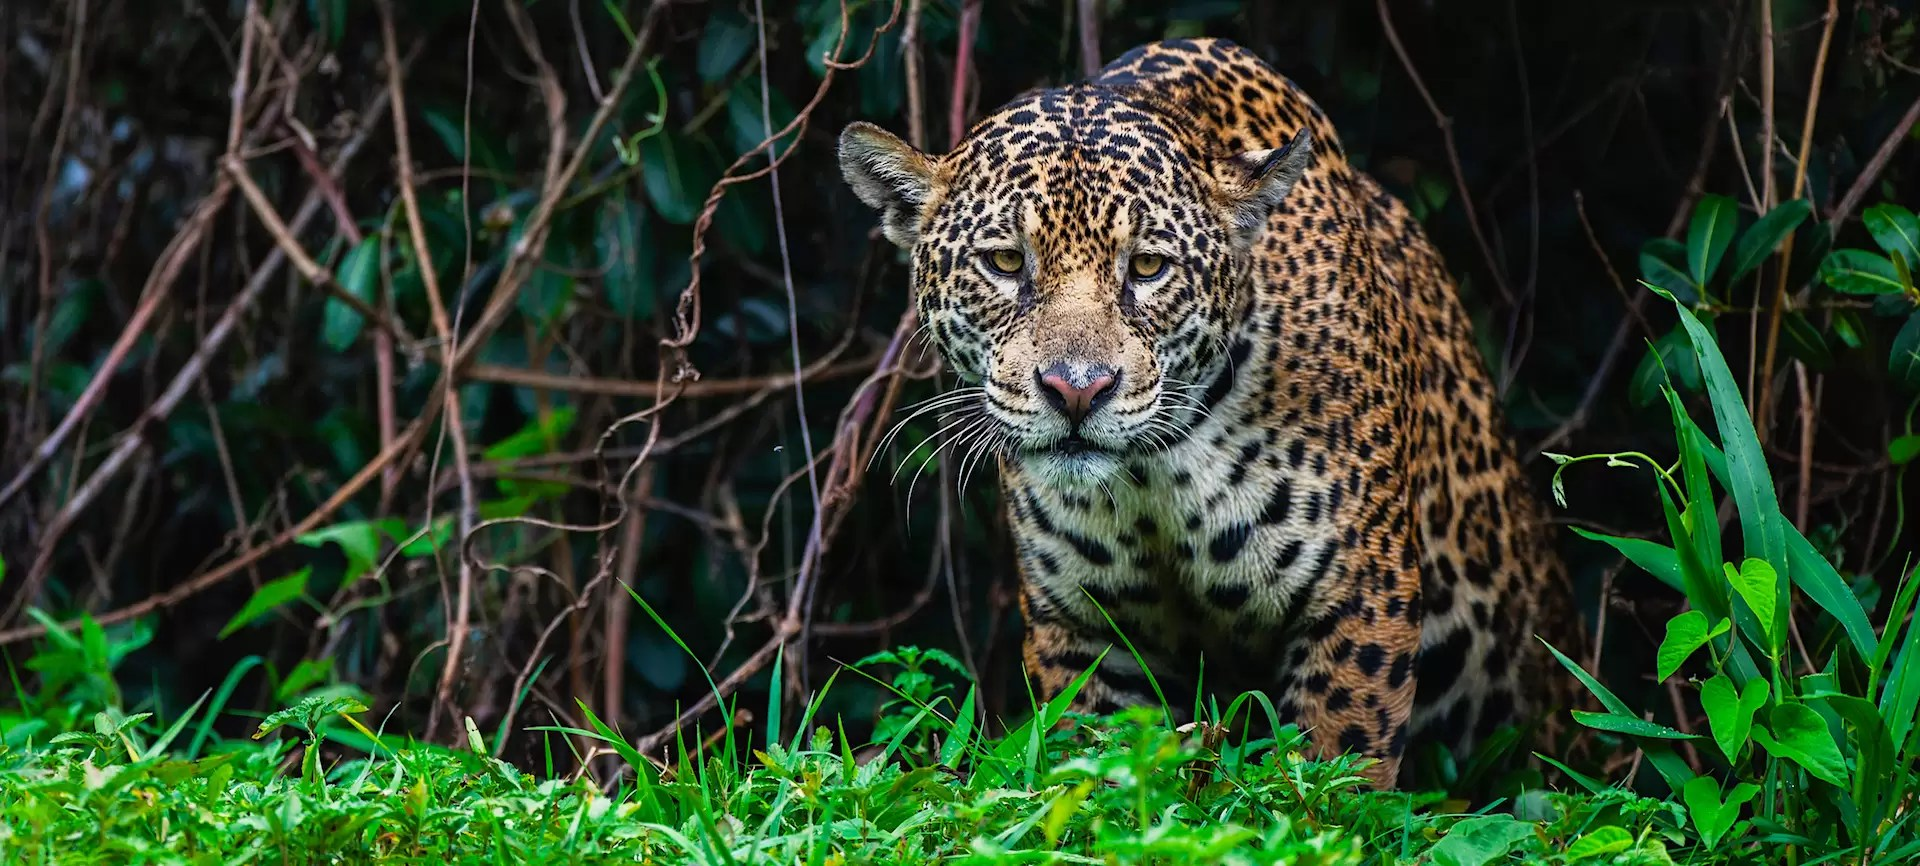 A wild jaguar hunting in the Pantanal appears out of thick vegetation